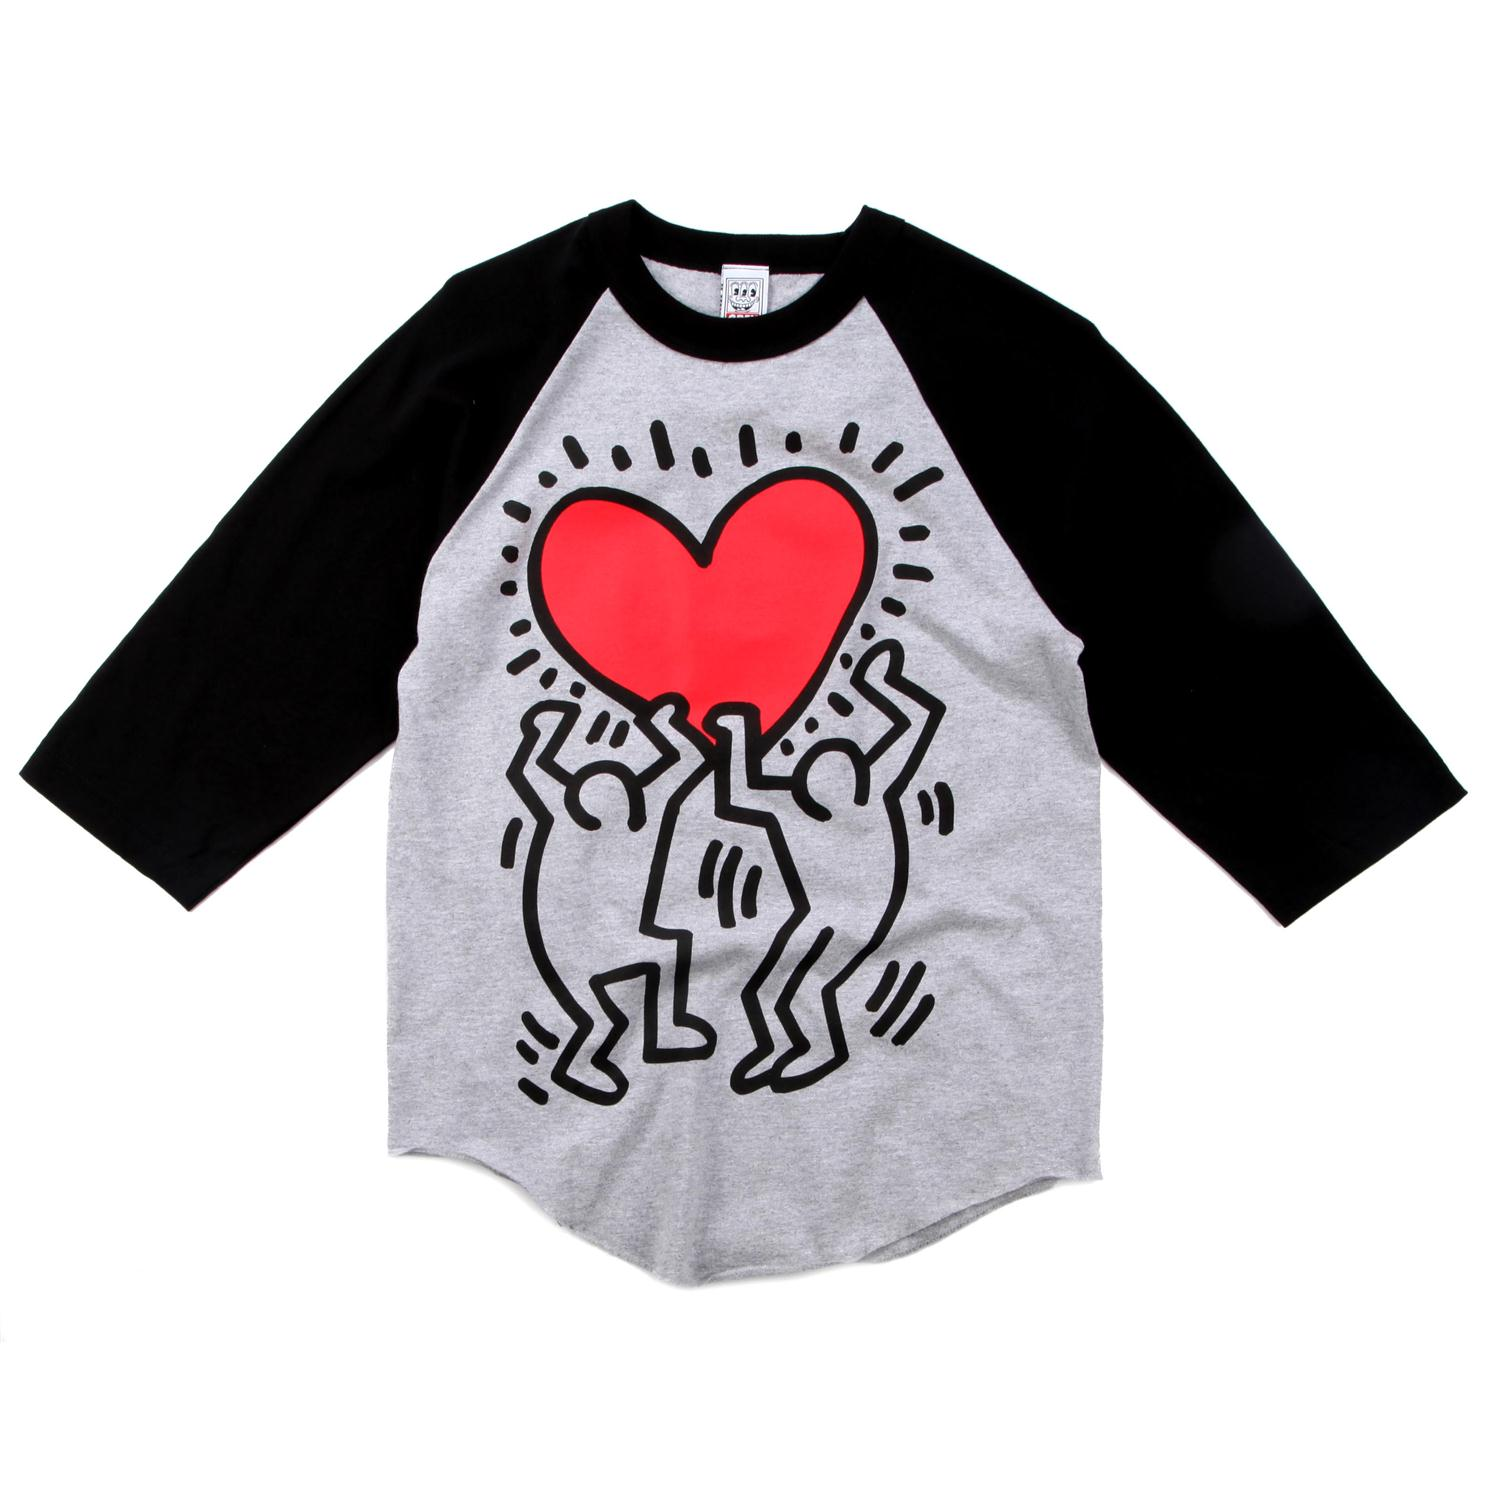 Obey Clothing Red Heart Raglan Shirt | evo outlet